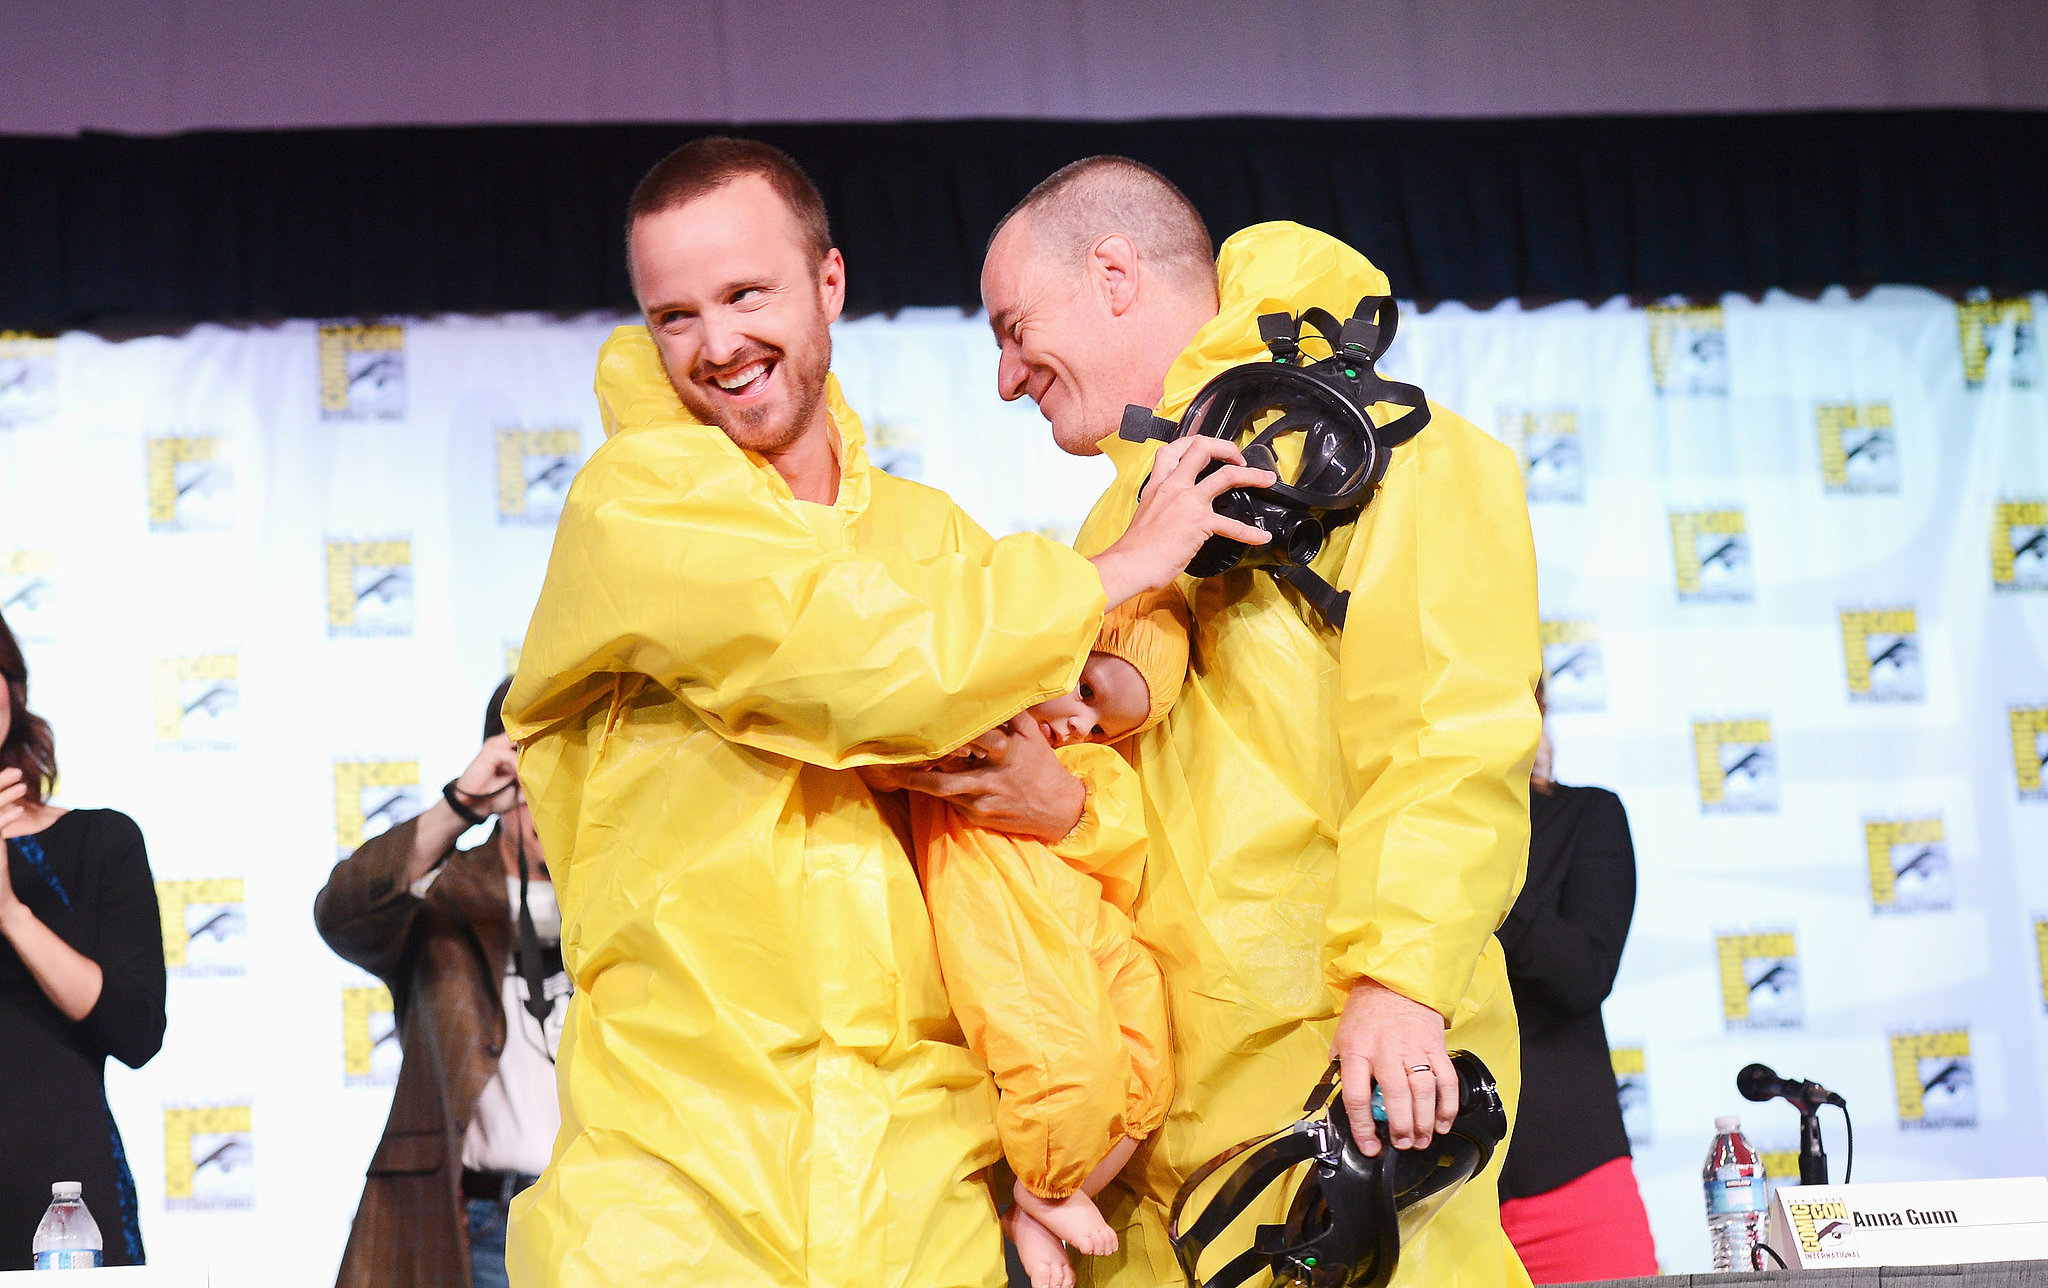 Aaron Paul and Bryan Cranston channeled their Breaking Bad characters at the show's press conference in 2012.